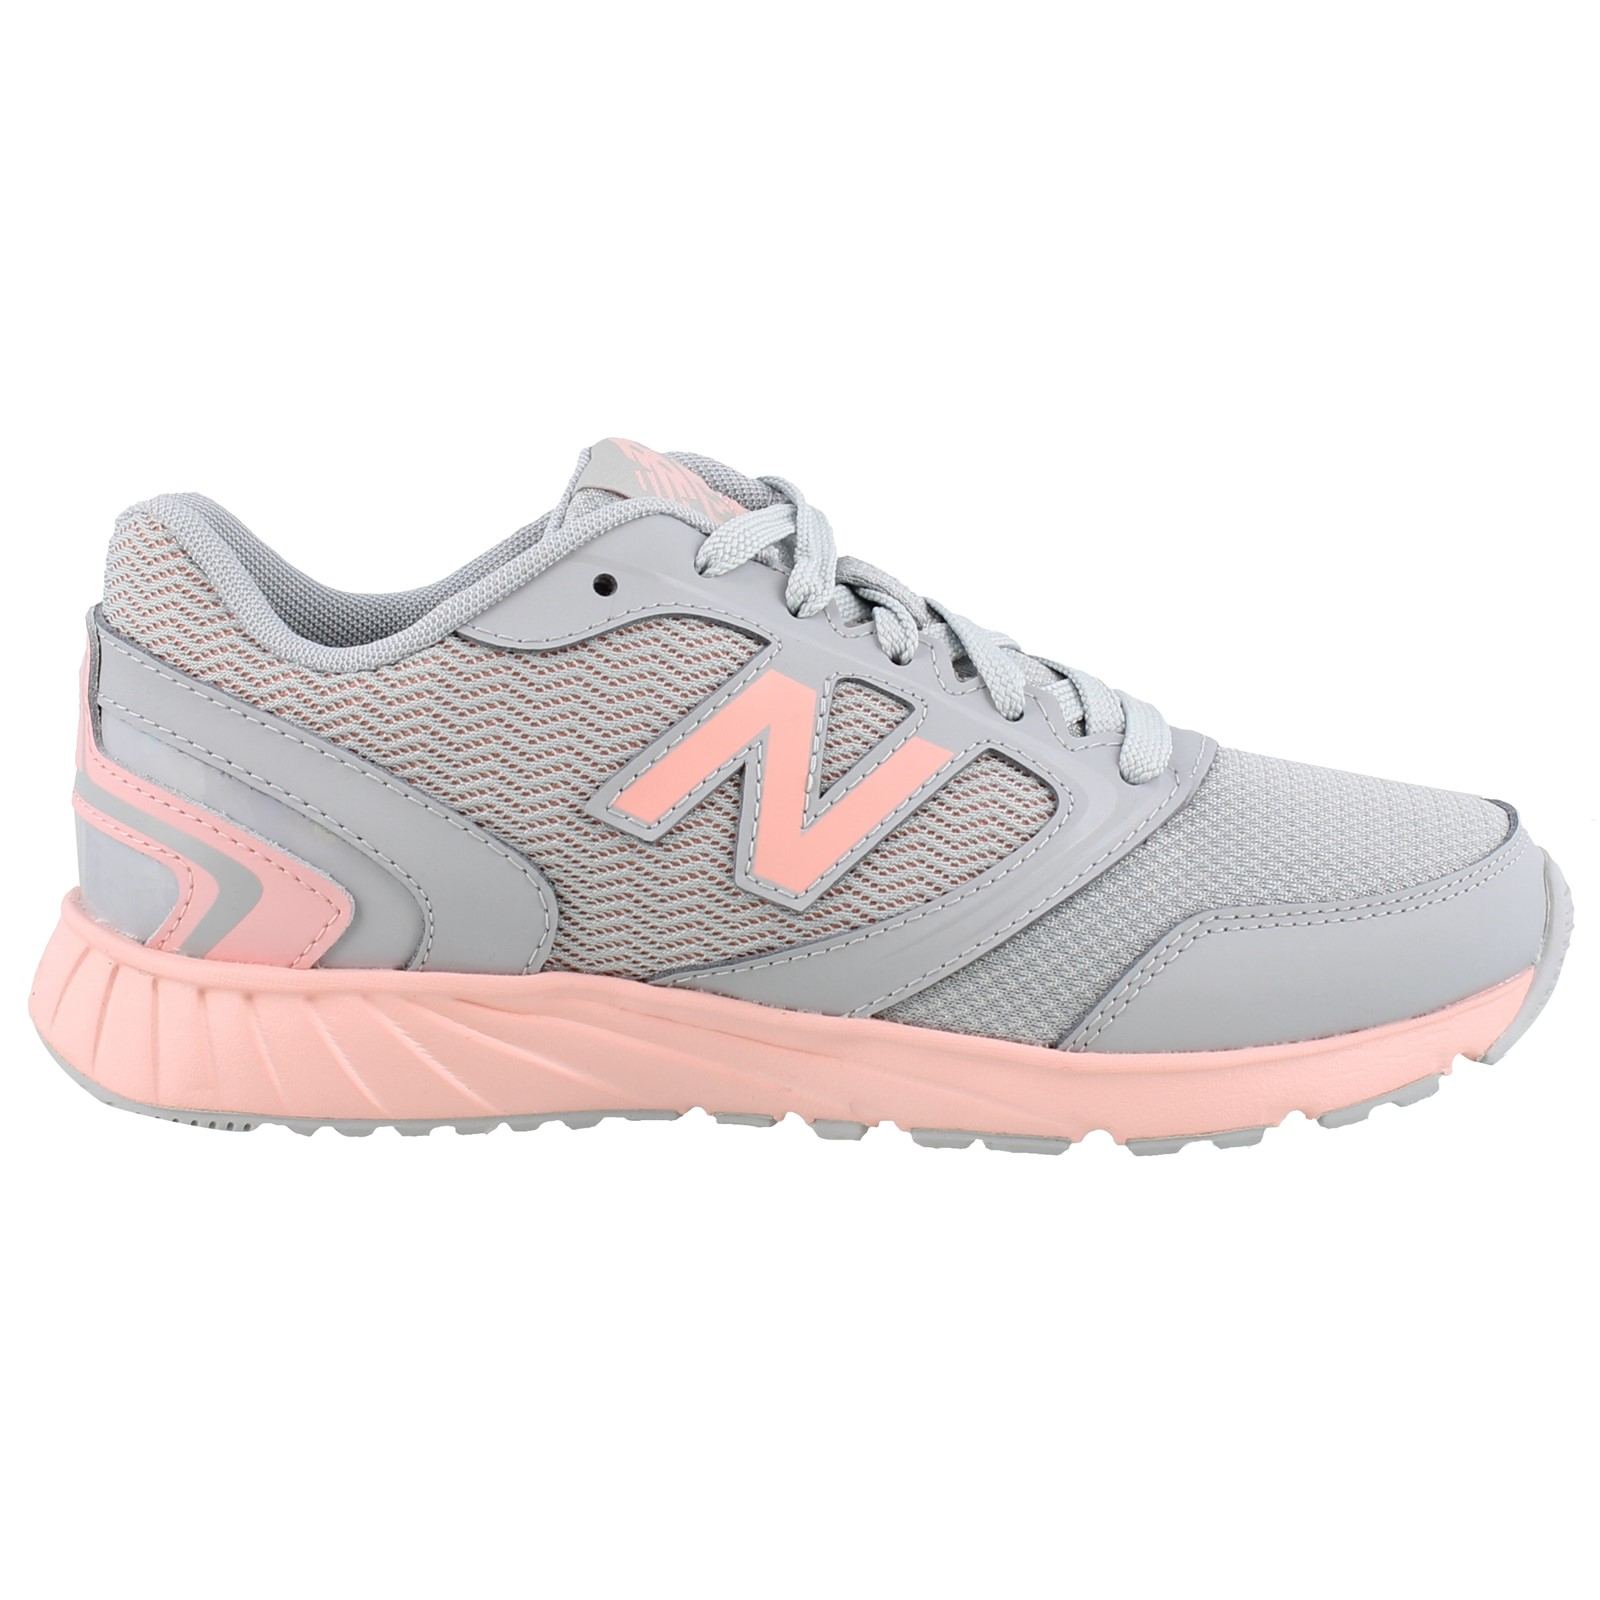 Kid's NEW BALANCE, 455 LACE UPSNEAKERS